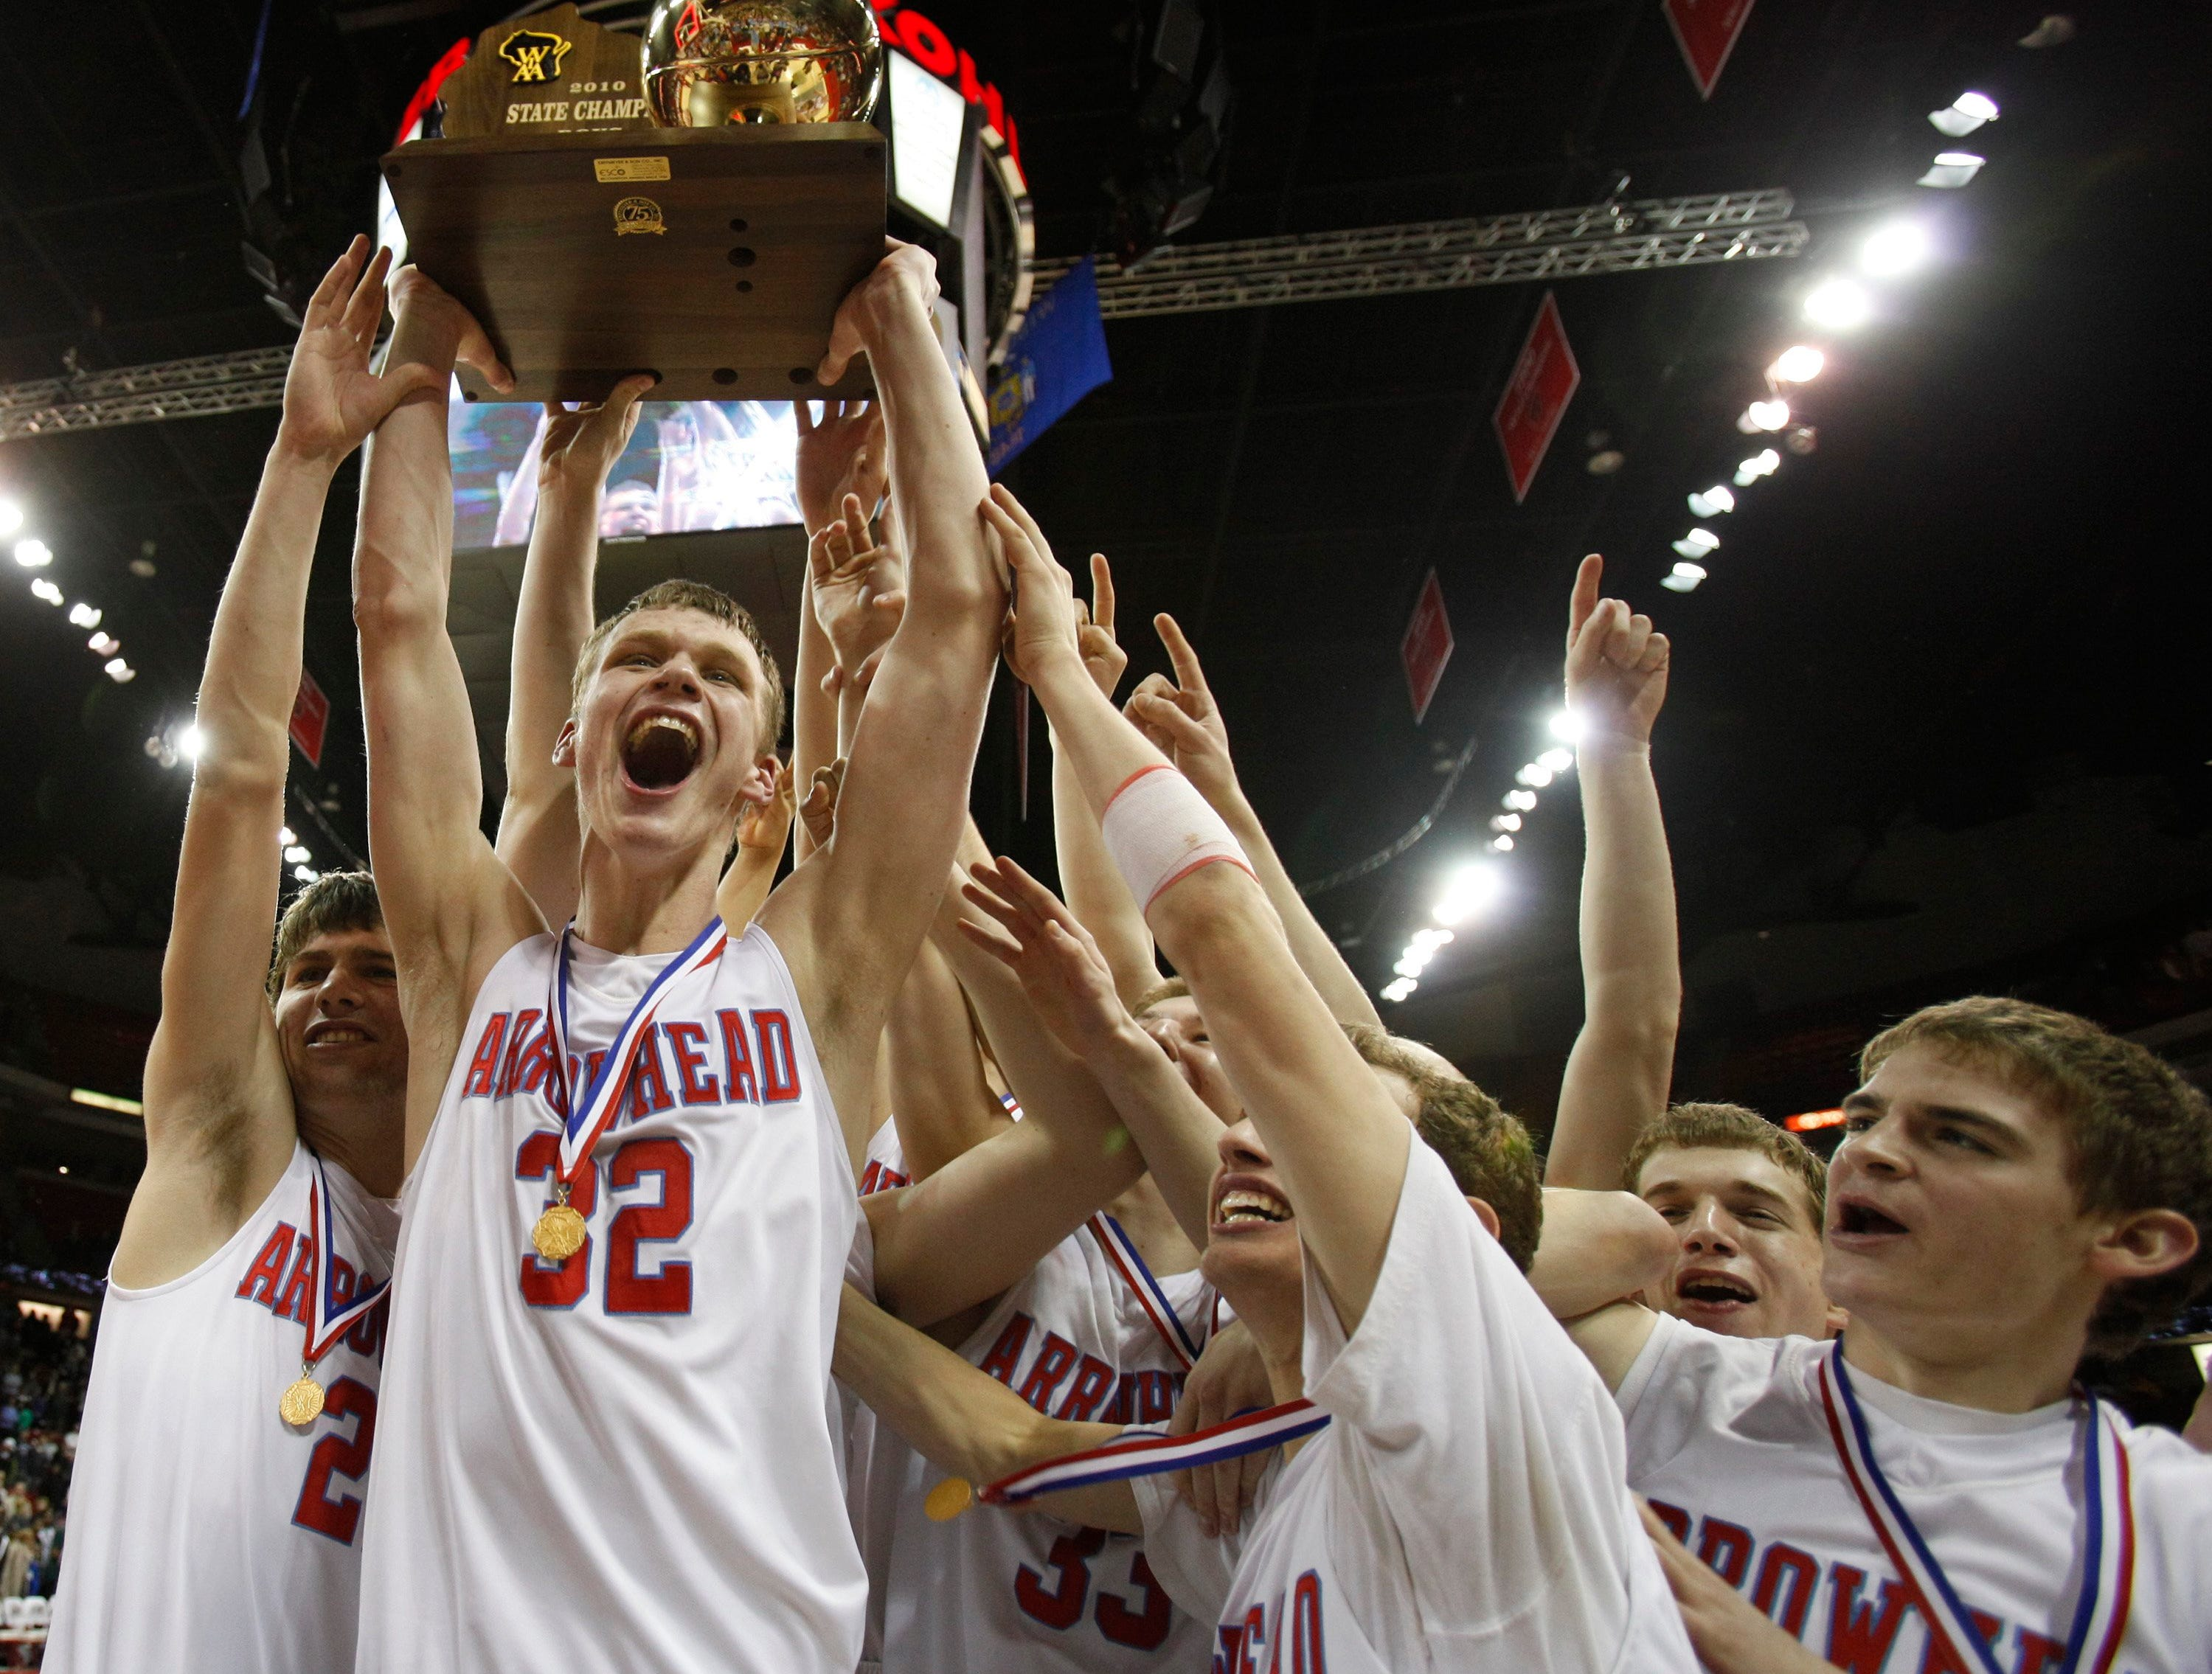 Arrowhead's Michael Skarie, left, Ben Mills (32), Charles Rushman (33) and Jonny Fischer celebrate winning the 2010 Division 1 championship WIAA state tournament basketball game against Madison Memorial.